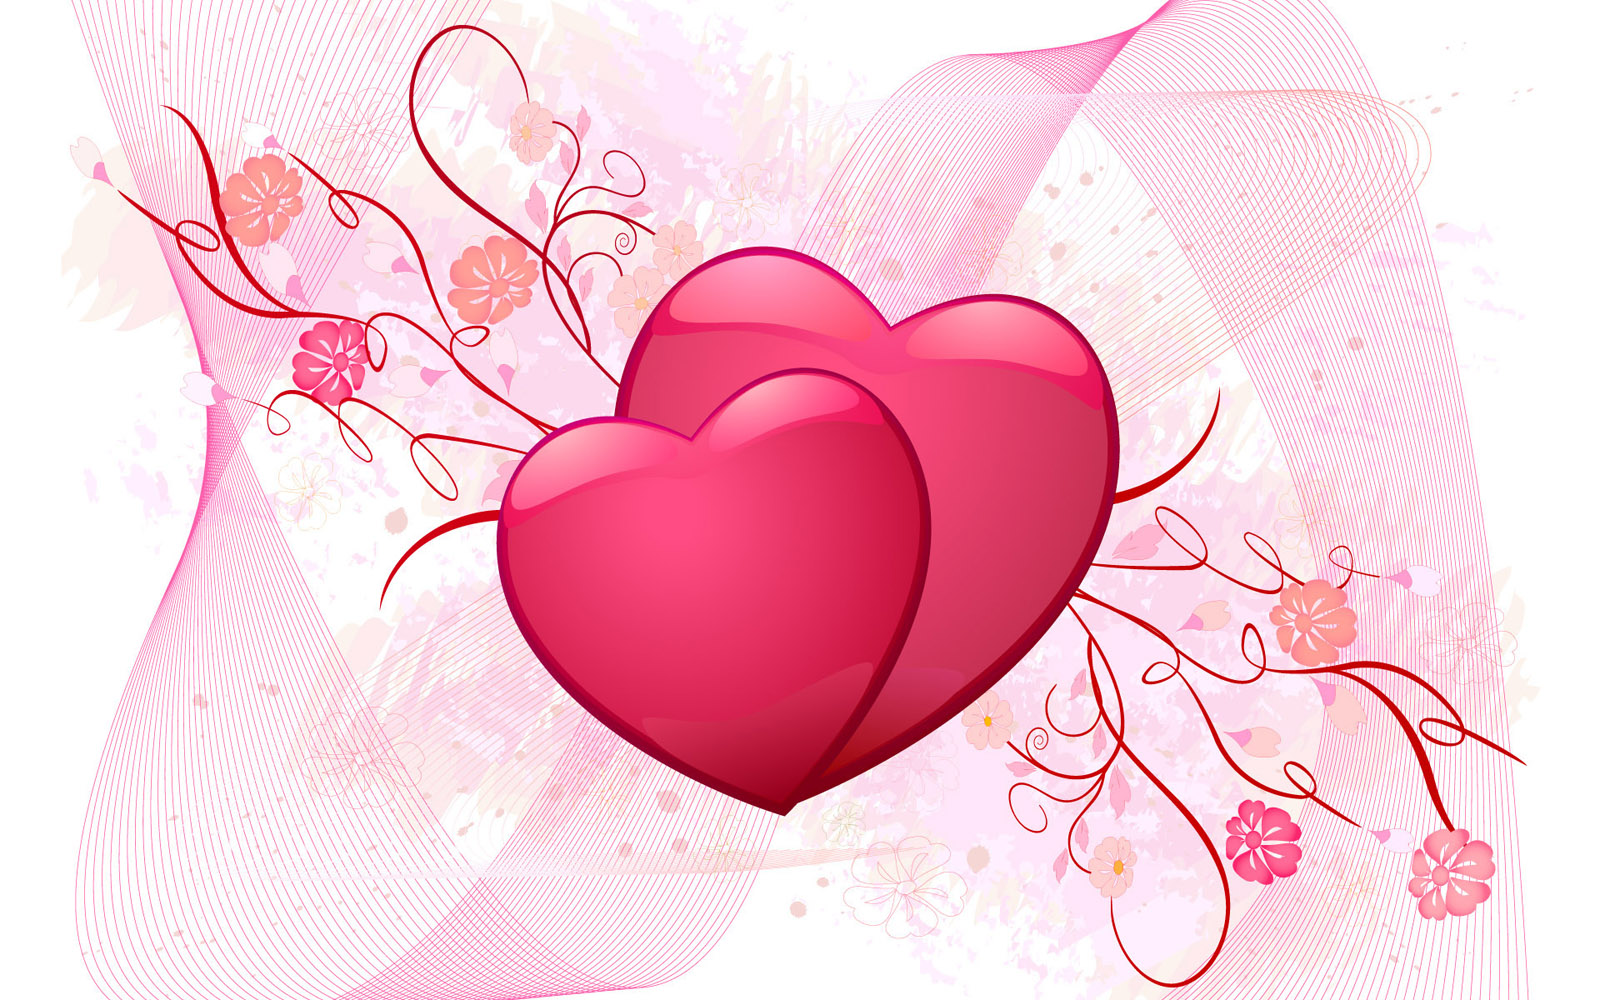 Amazing wallpapers new love photos wallpaper new love - Love wallpaper new ...